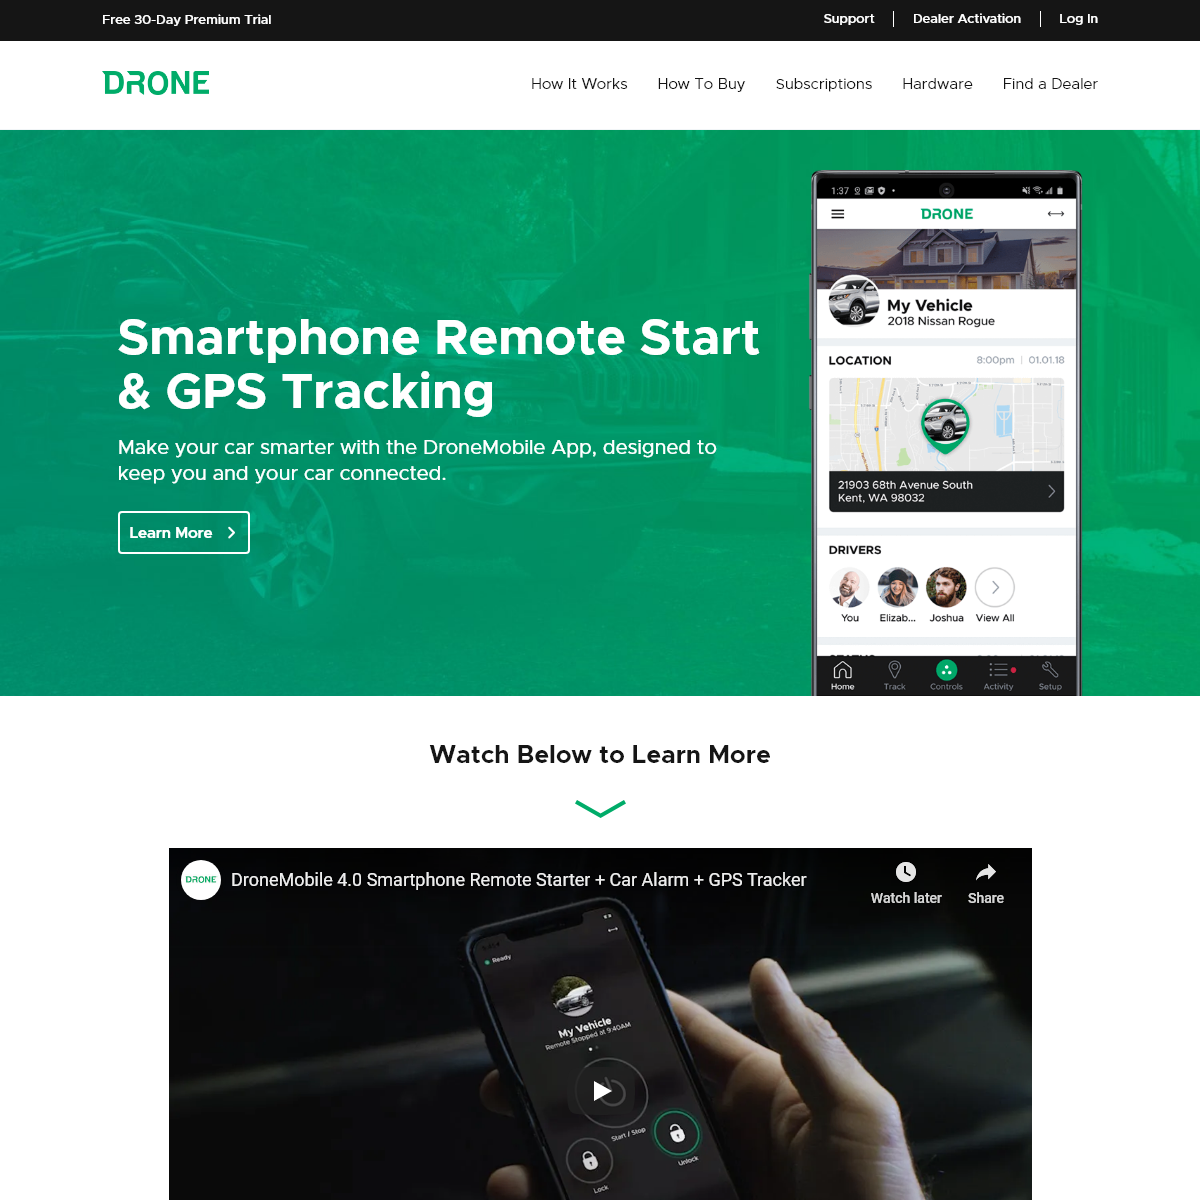 DroneMobile - Smartphone Remote Start, Security, and GPS Tracking